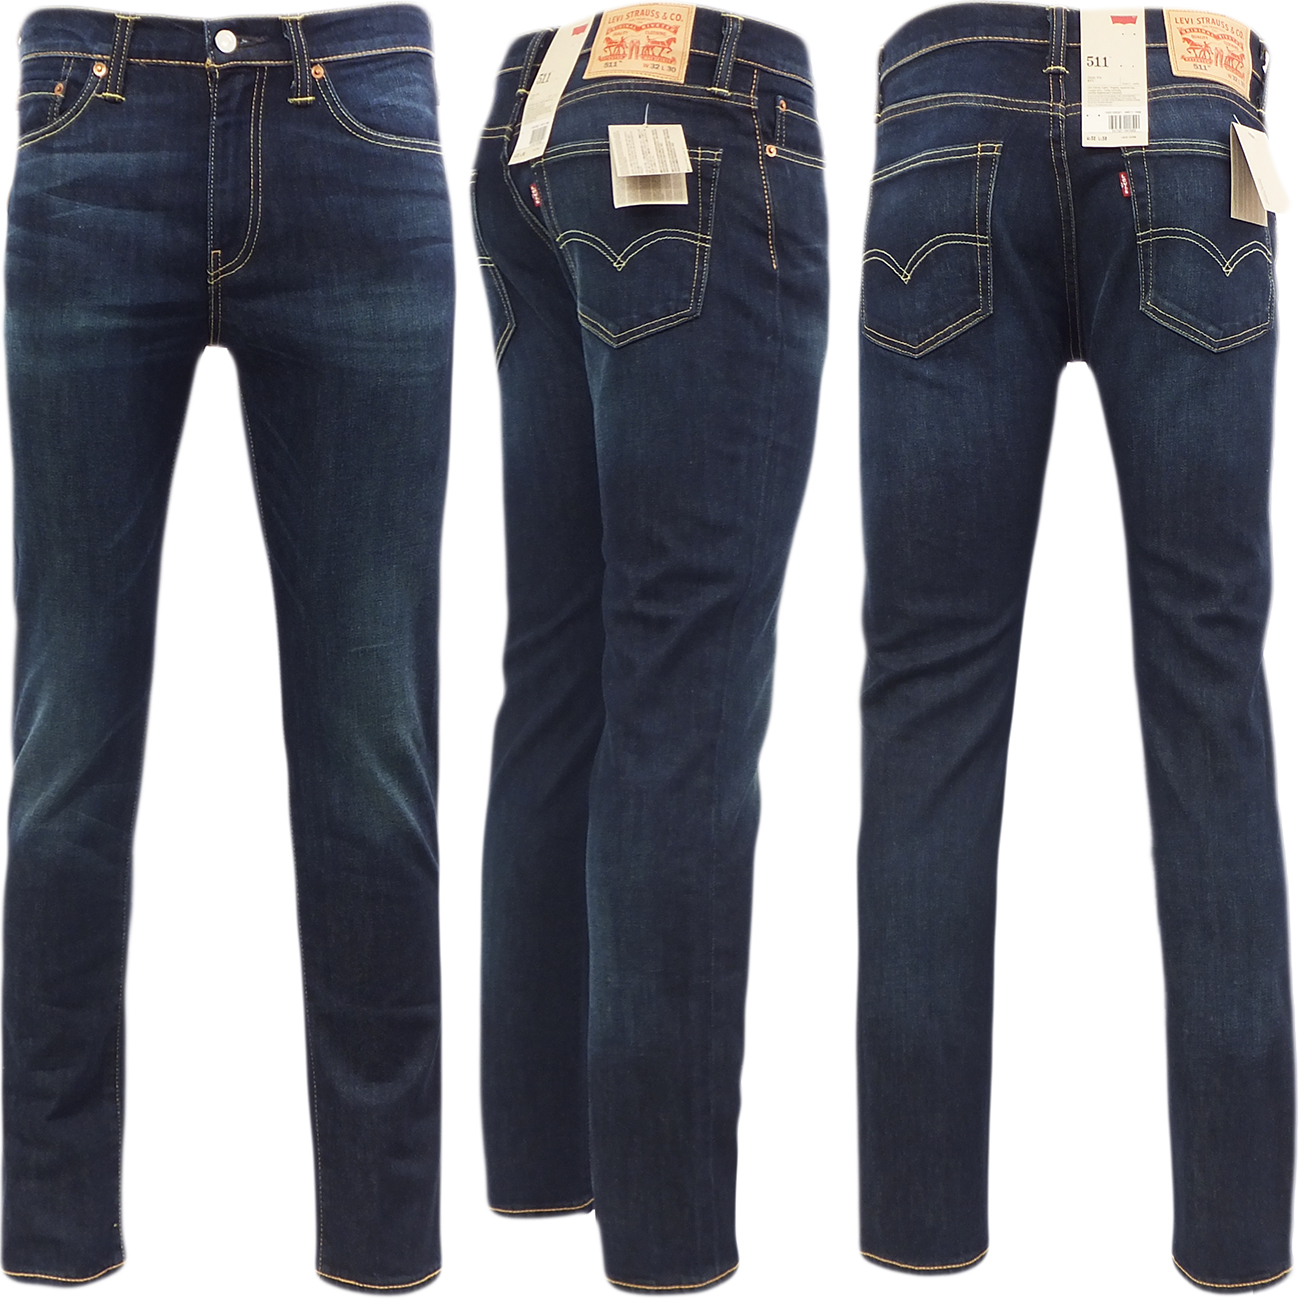 levi strauss mens 511 slim fit jean tapered leg biology. Black Bedroom Furniture Sets. Home Design Ideas